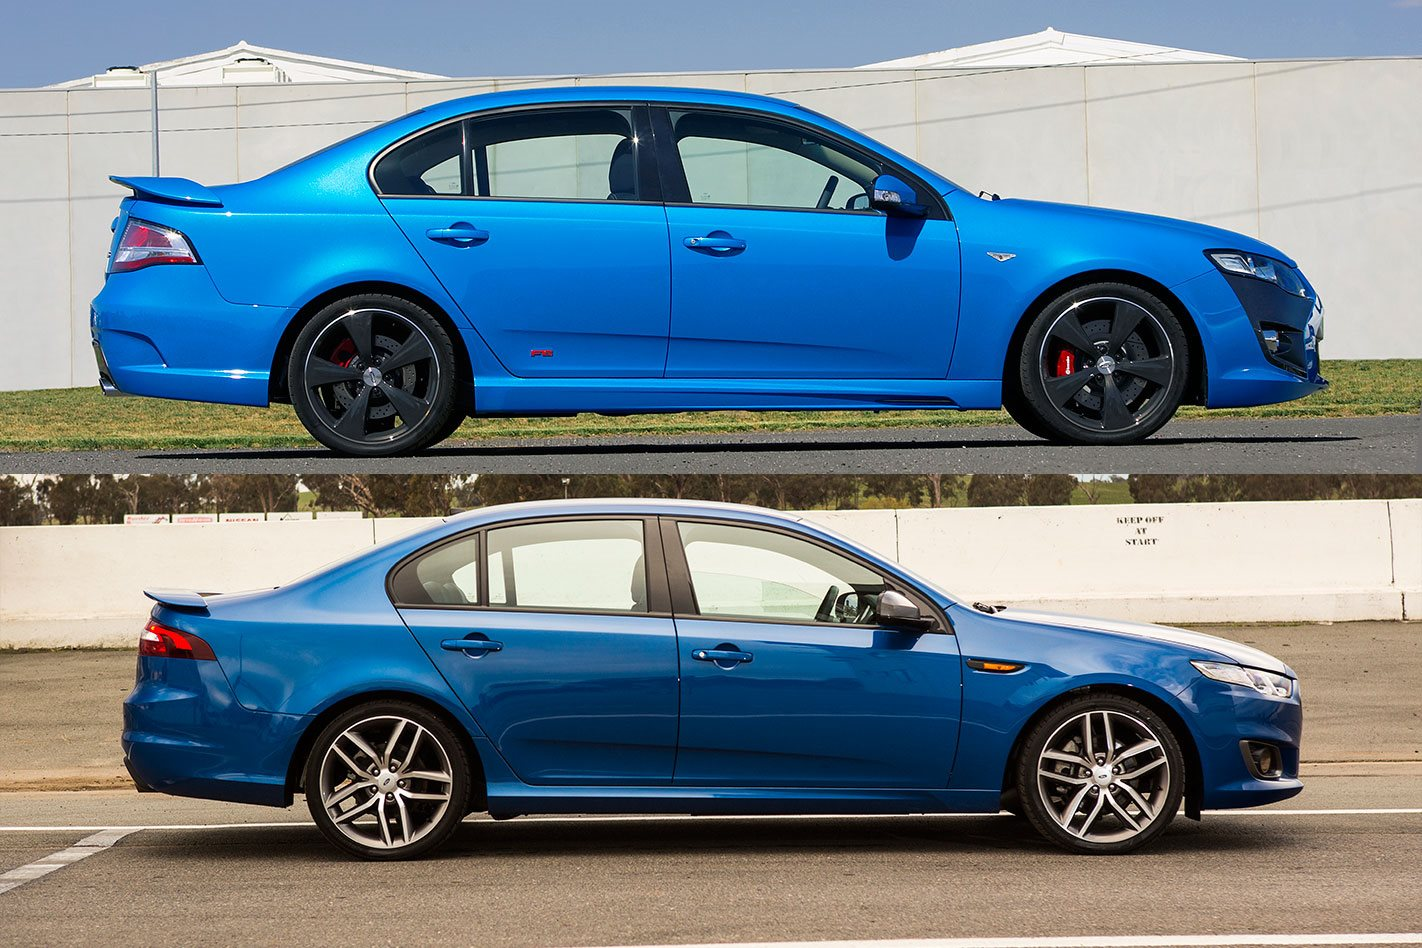 FPV F6 vs Ford XR6 Turbo engines: what's the difference?